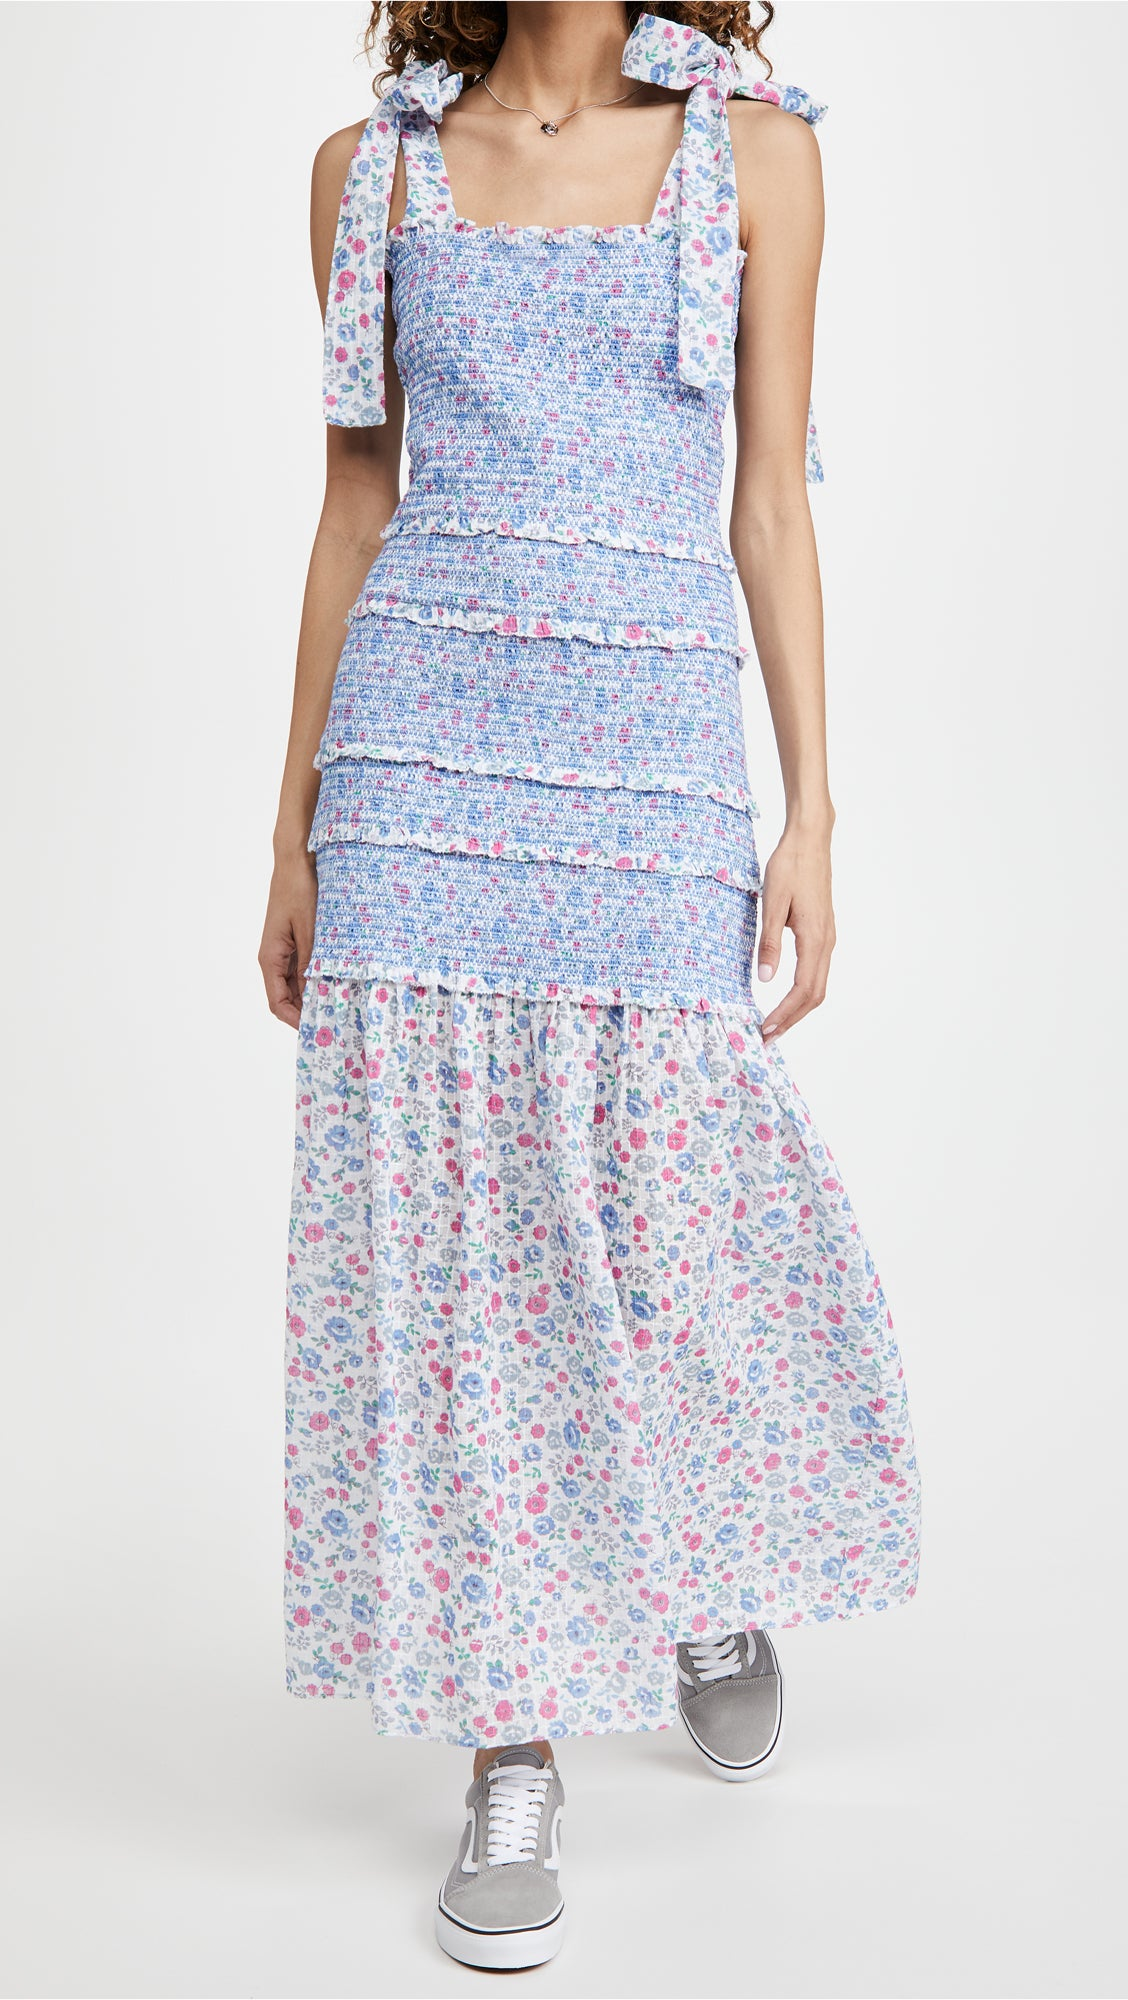 model in the blue, white, and pink floral dress with tie ribbon straps